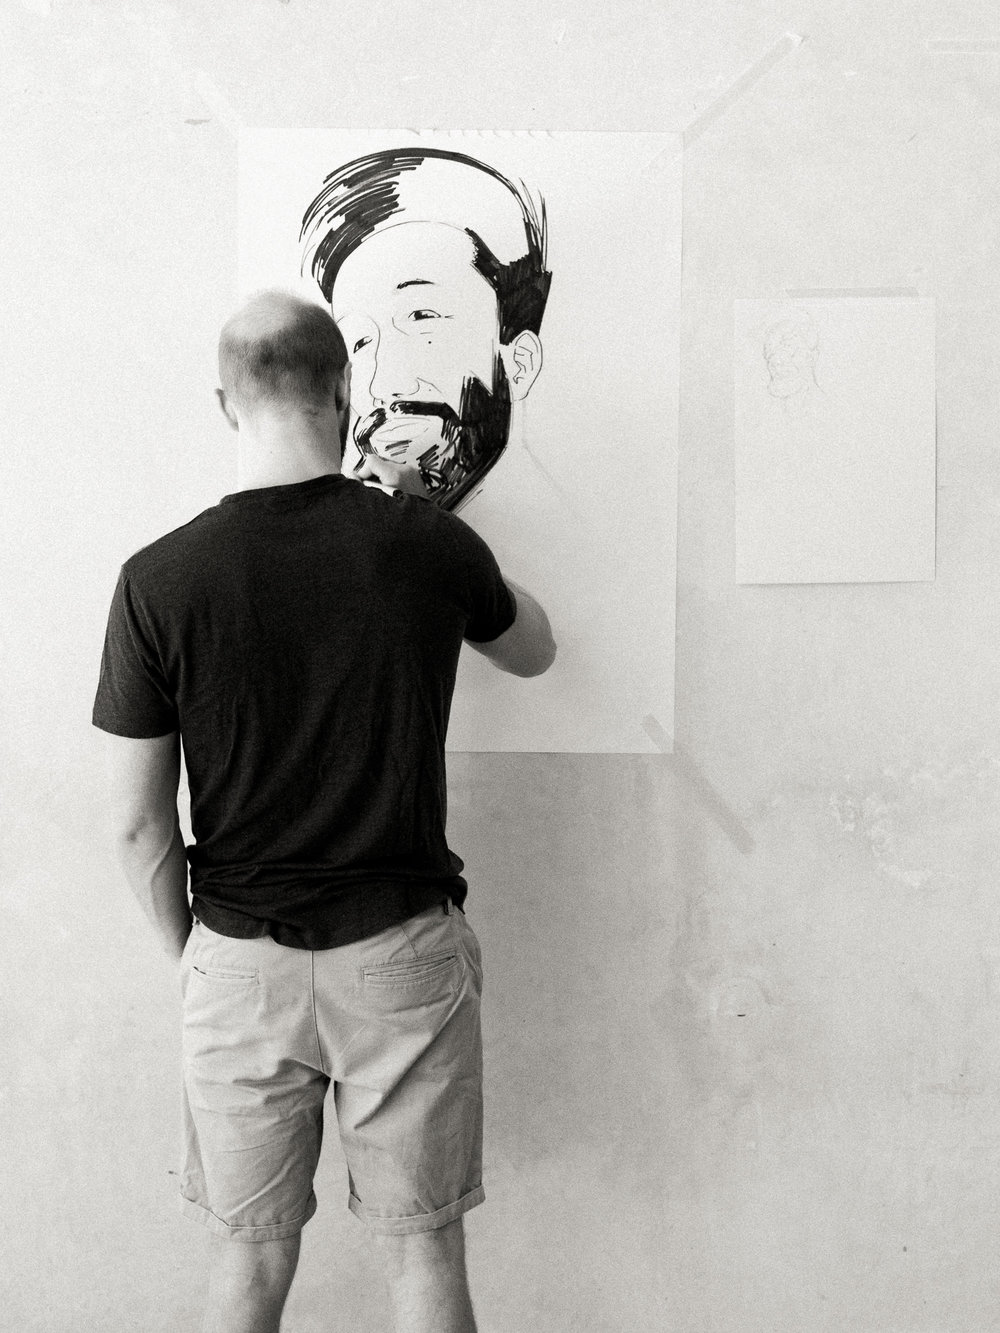 Alex-bw-immersed-2048 (16 of 10).jpg